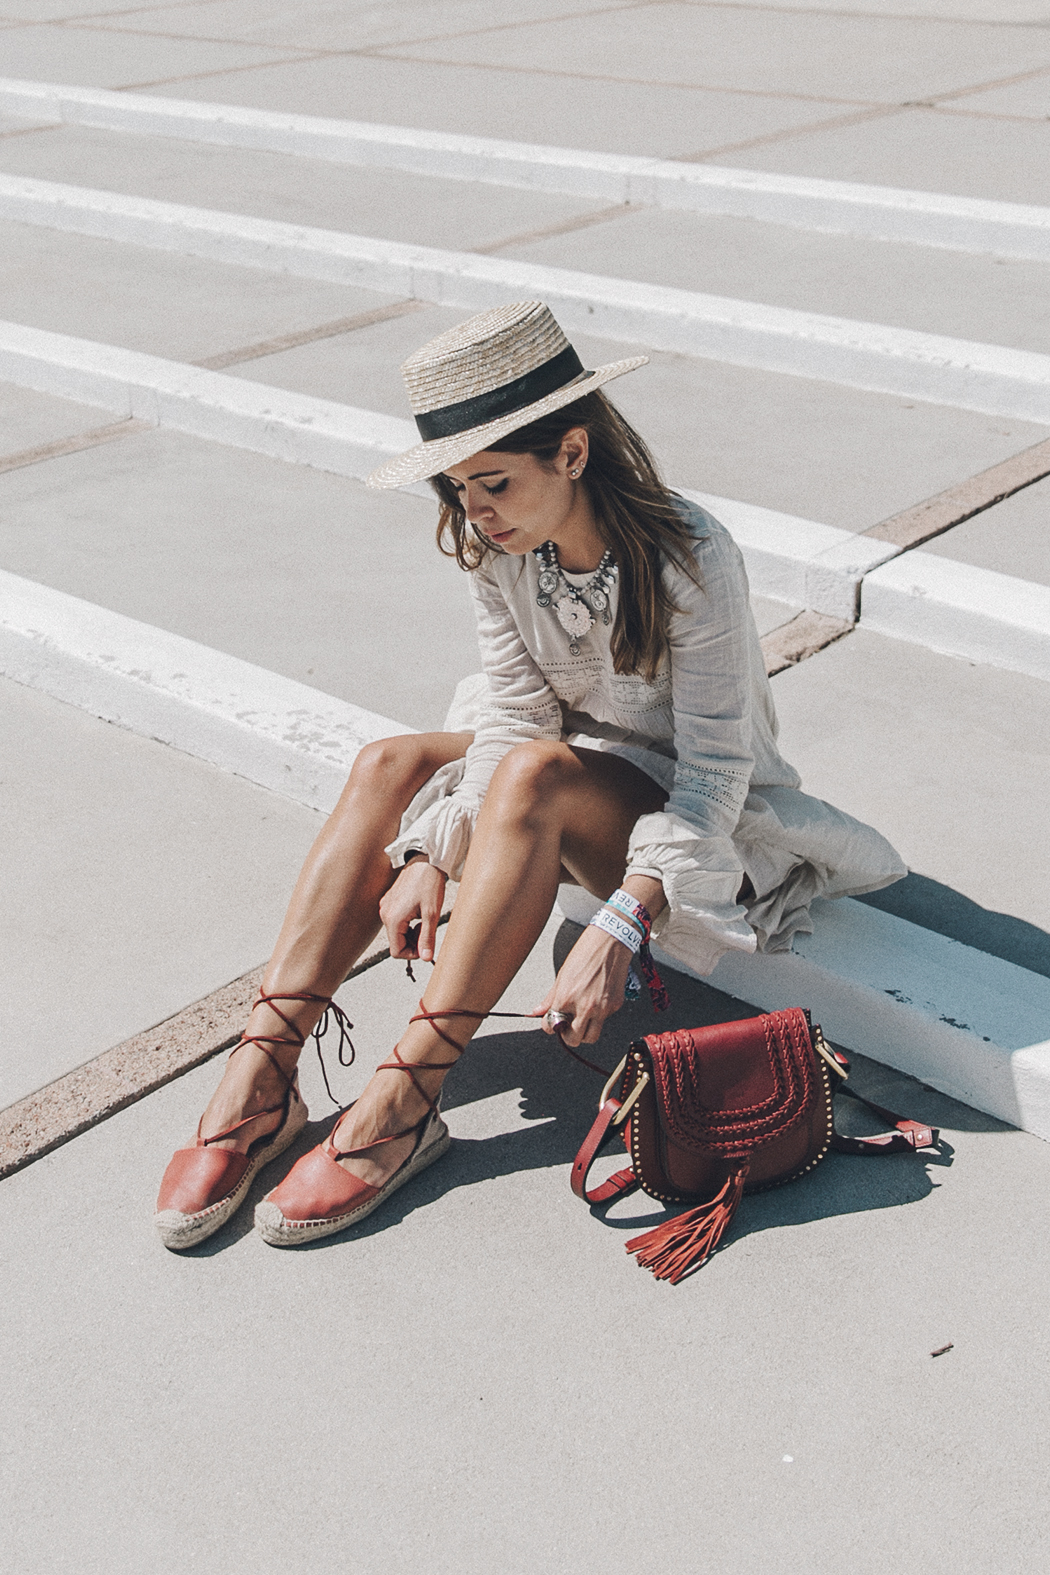 Coachella_2016-Revolve_Clothing-Tula_Rosa_Dress-Boho_Dress-Festival_Outfit-Straw_Hat-Soludos_Espadrilles-Collage_Vintage-40